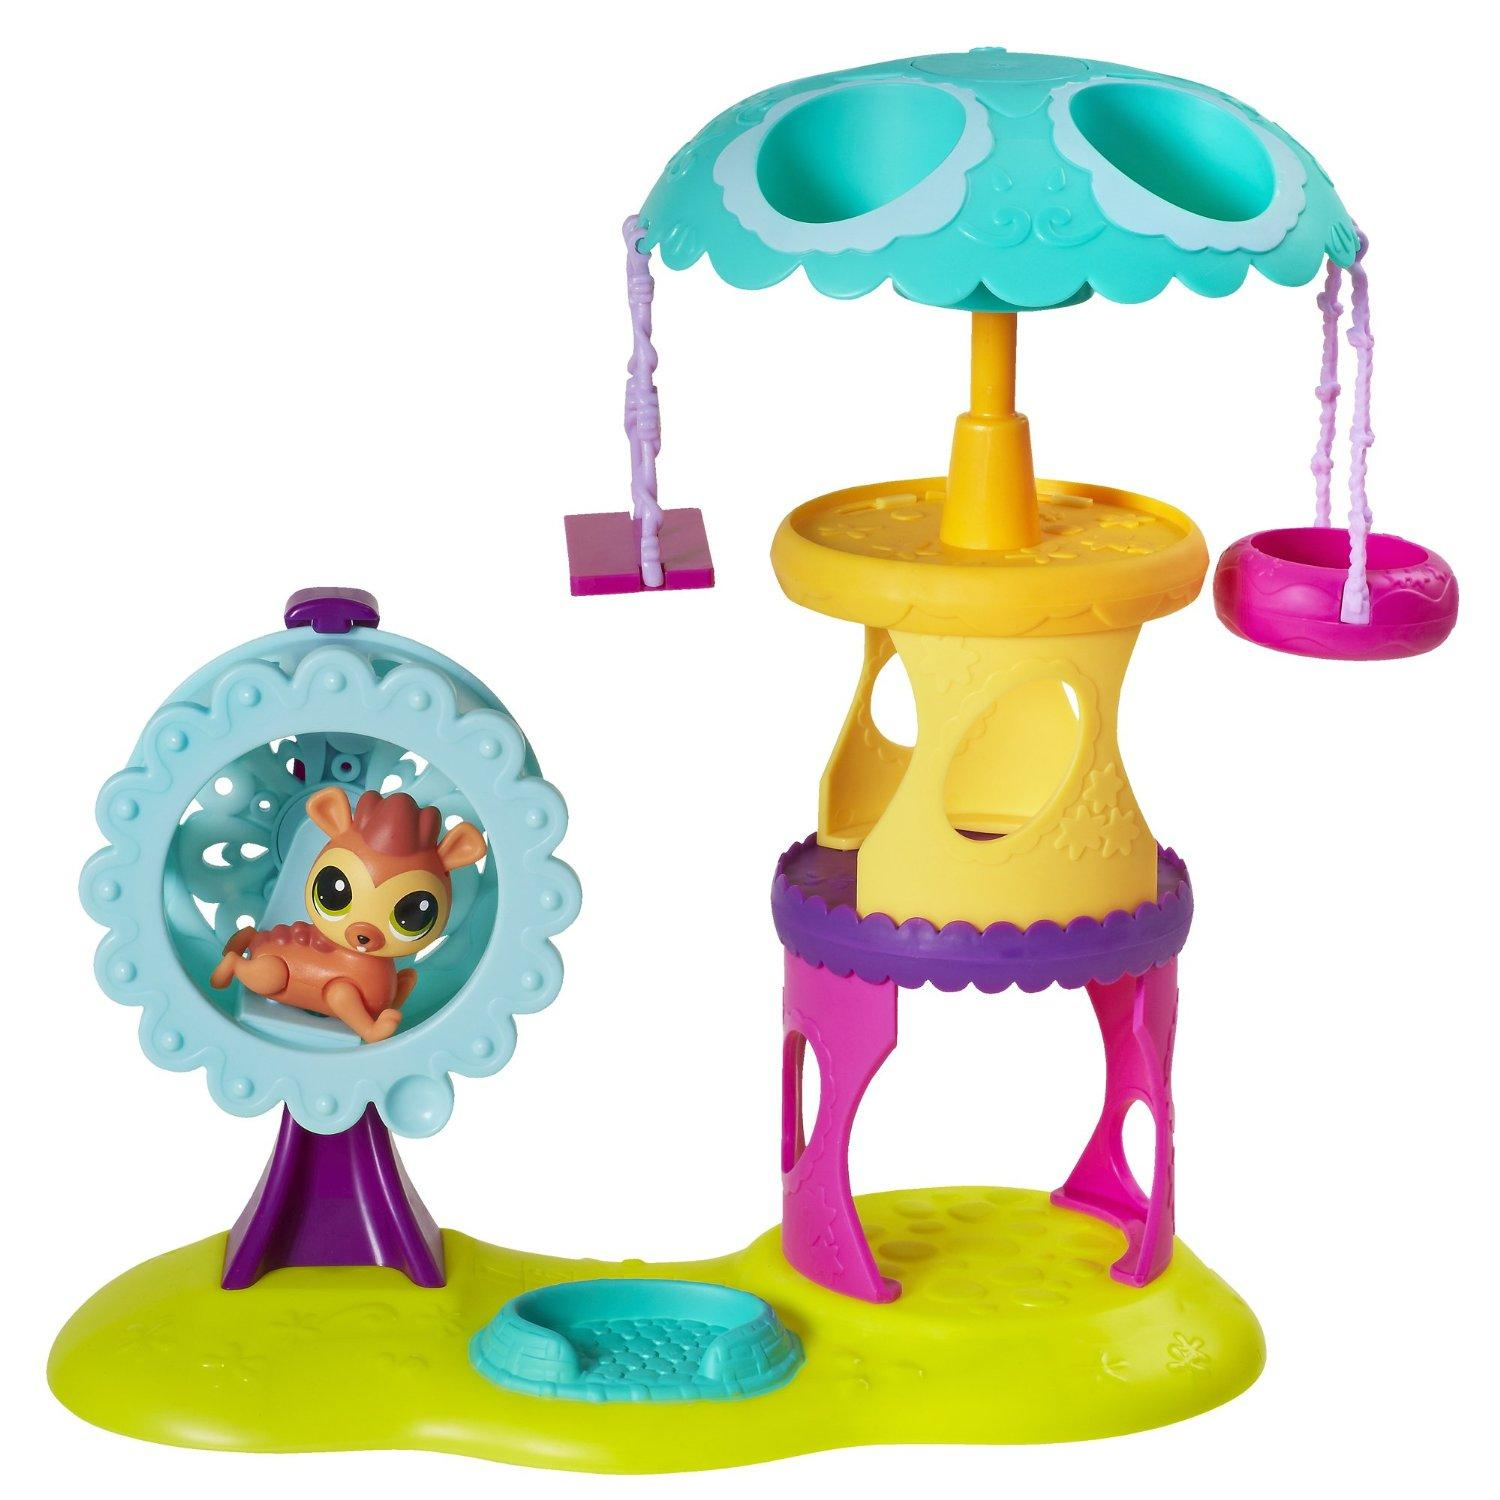 $9.81 Littlest Pet Shop Playtime Park with Russell Ferguson Playset